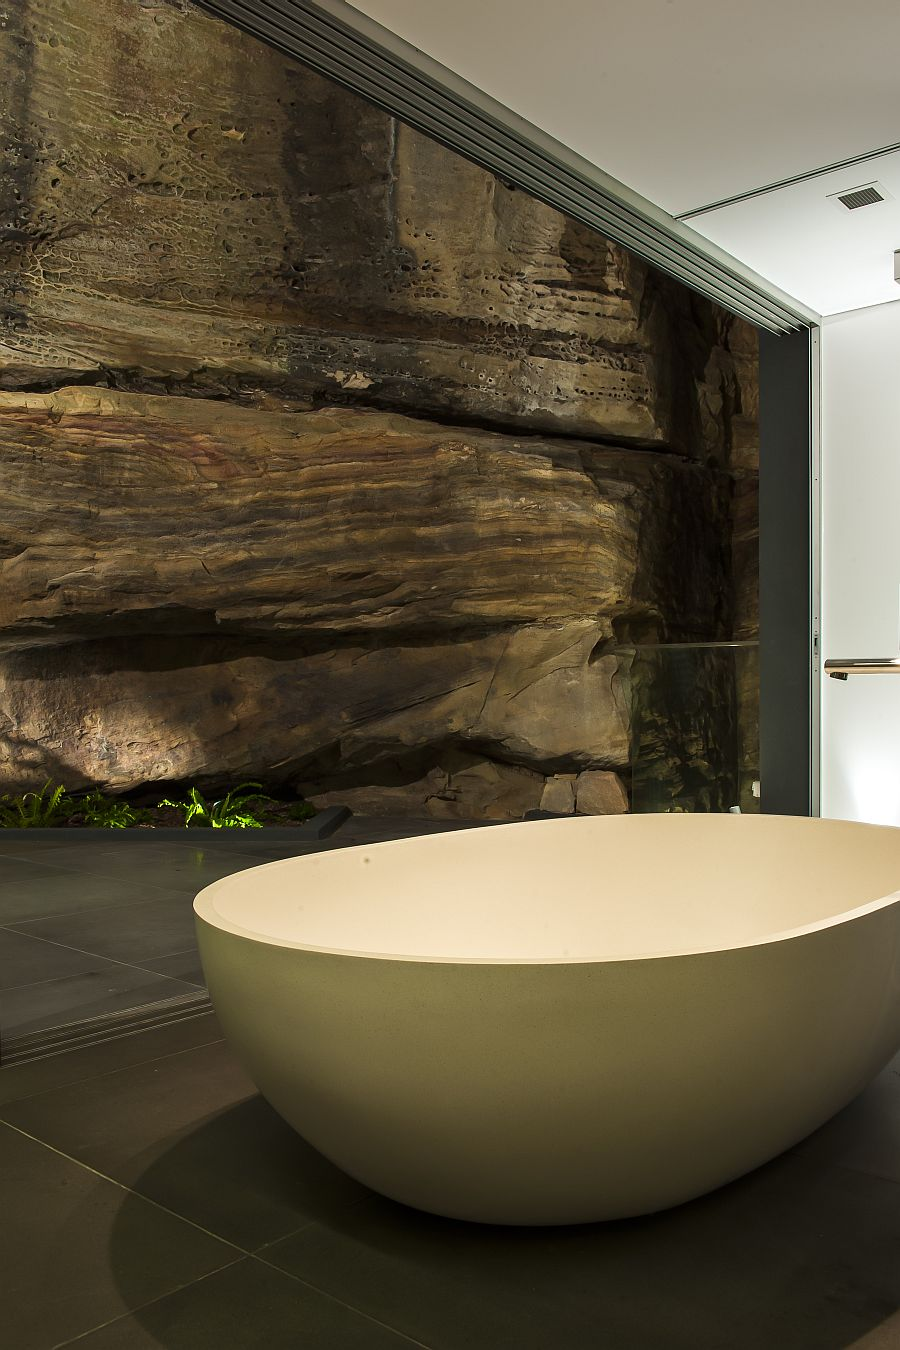 Freestanding bathtub with the natural cliff wall behind it